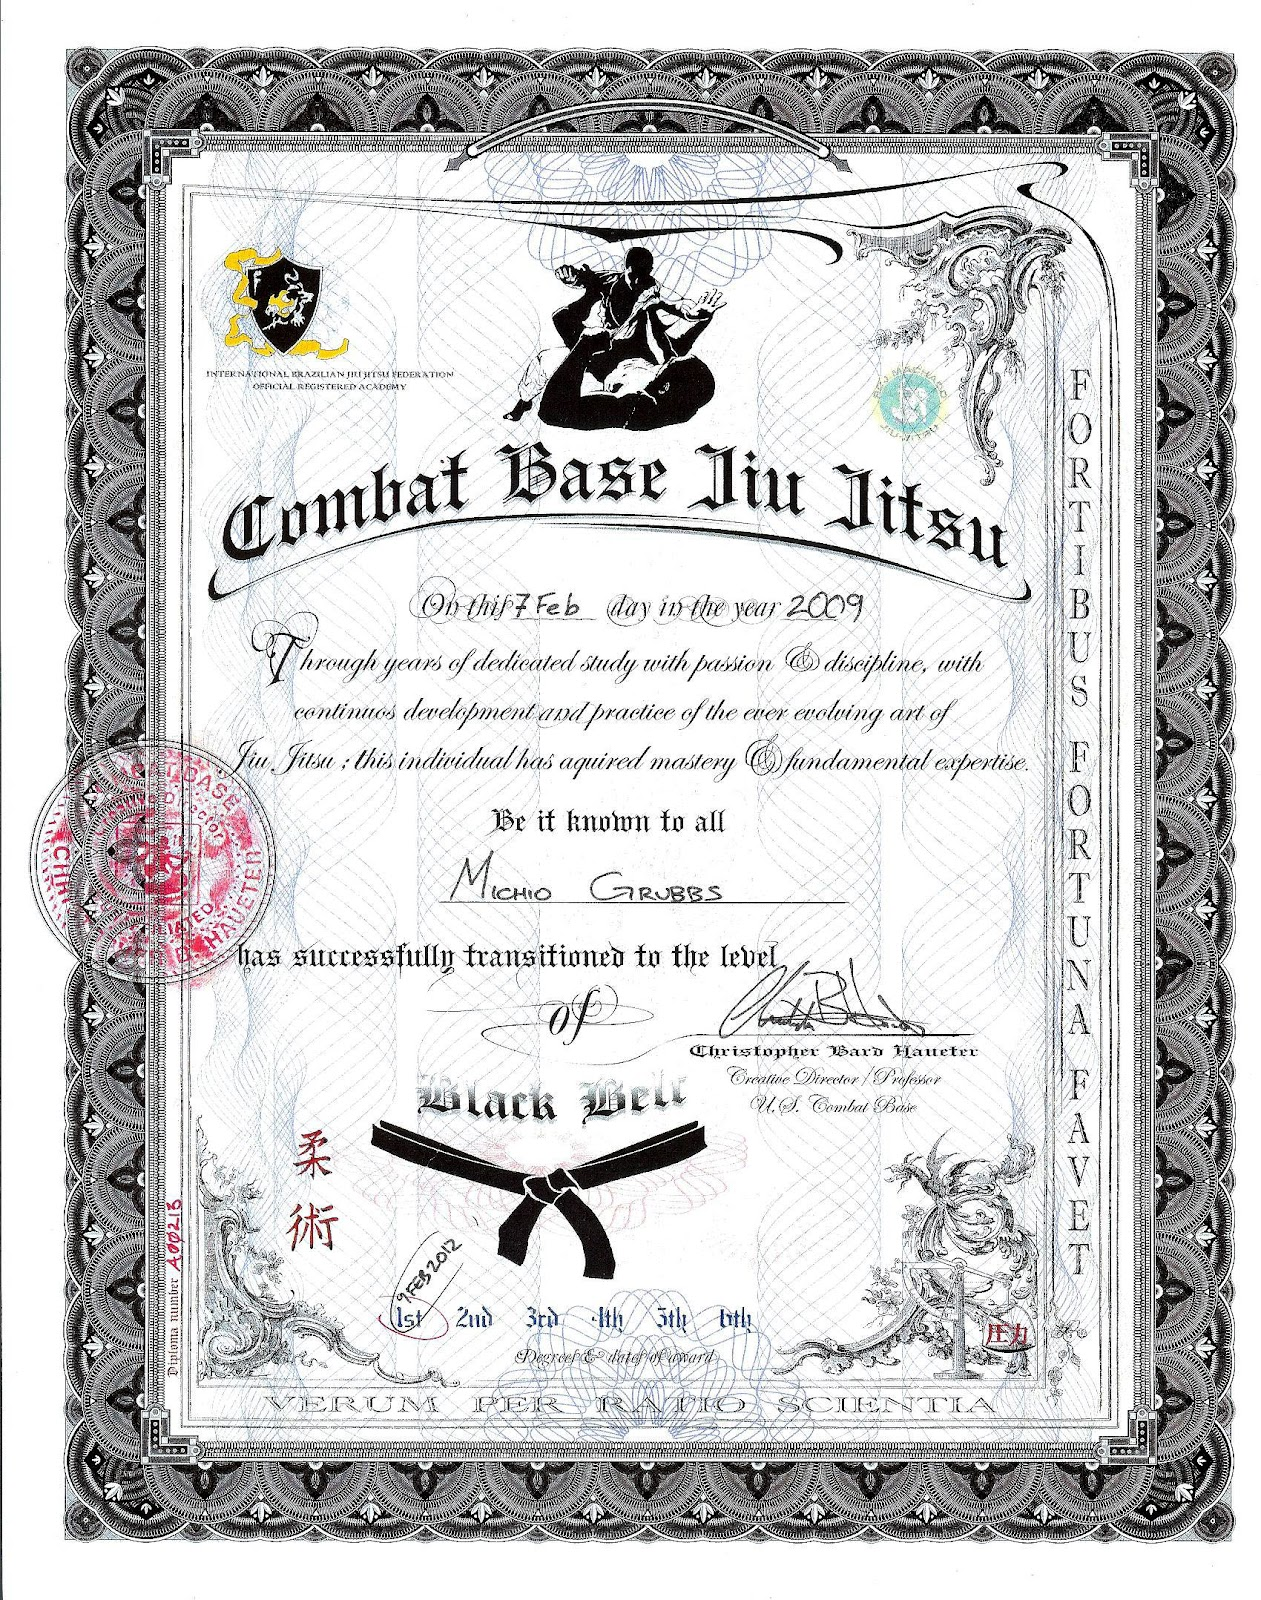 Pdf mcmap black belt certificate 28 pages black belt mcmap black belt certificate black belt certificate template quotes yelopaper Gallery